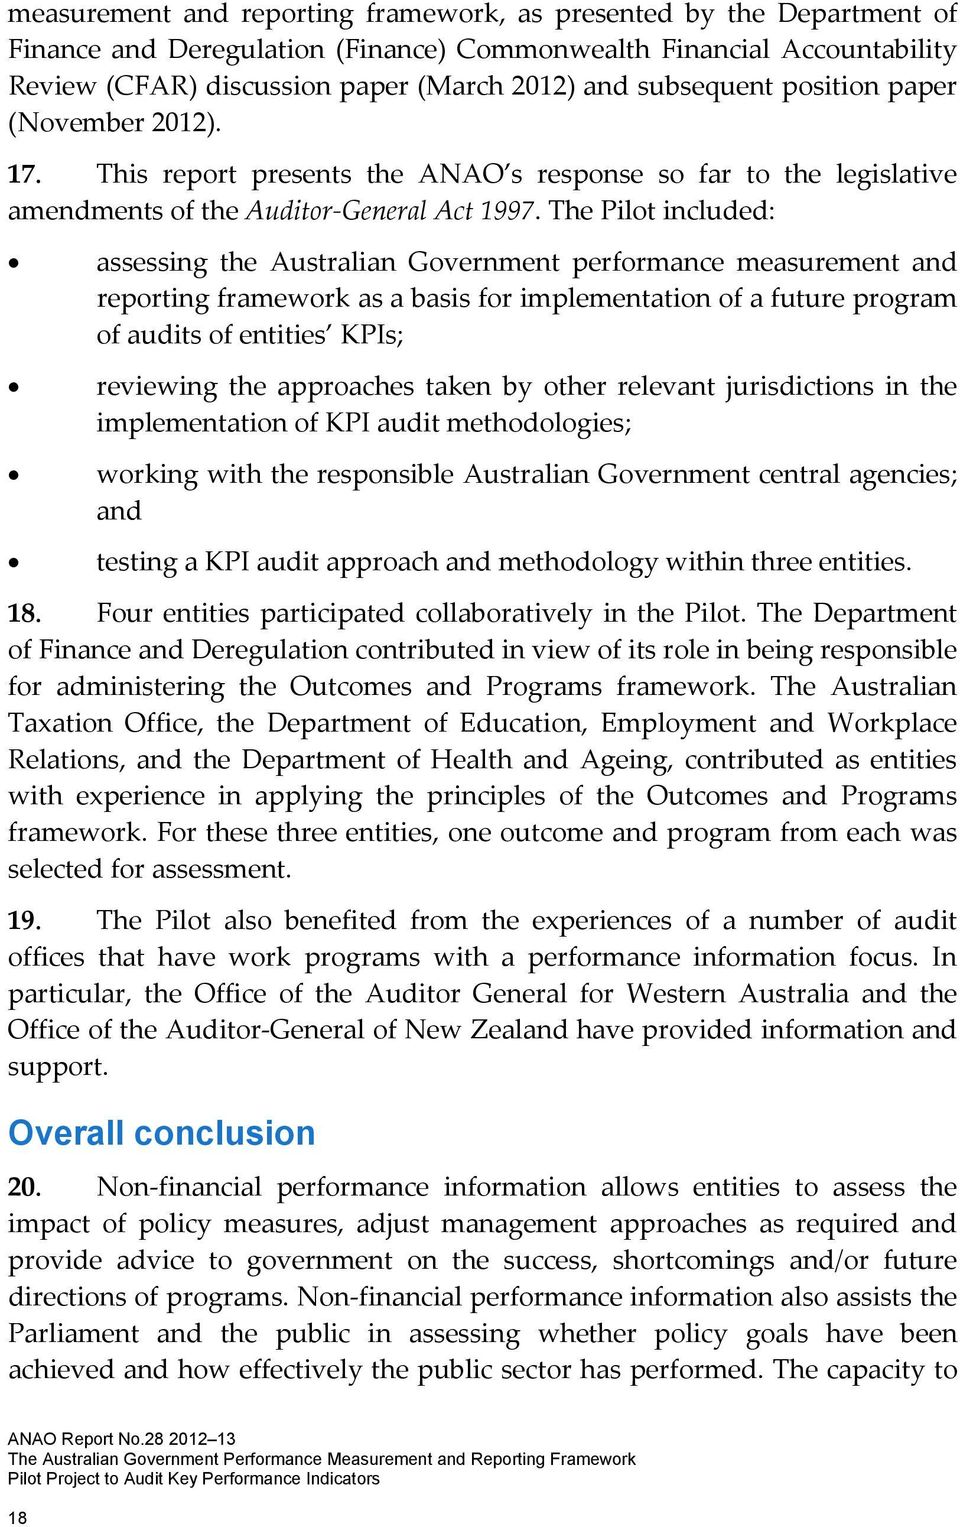 The Pilot included: assessing the Australian Government performance measurement and reporting framework as a basis for implementation of a future program of audits of entities KPIs; reviewing the